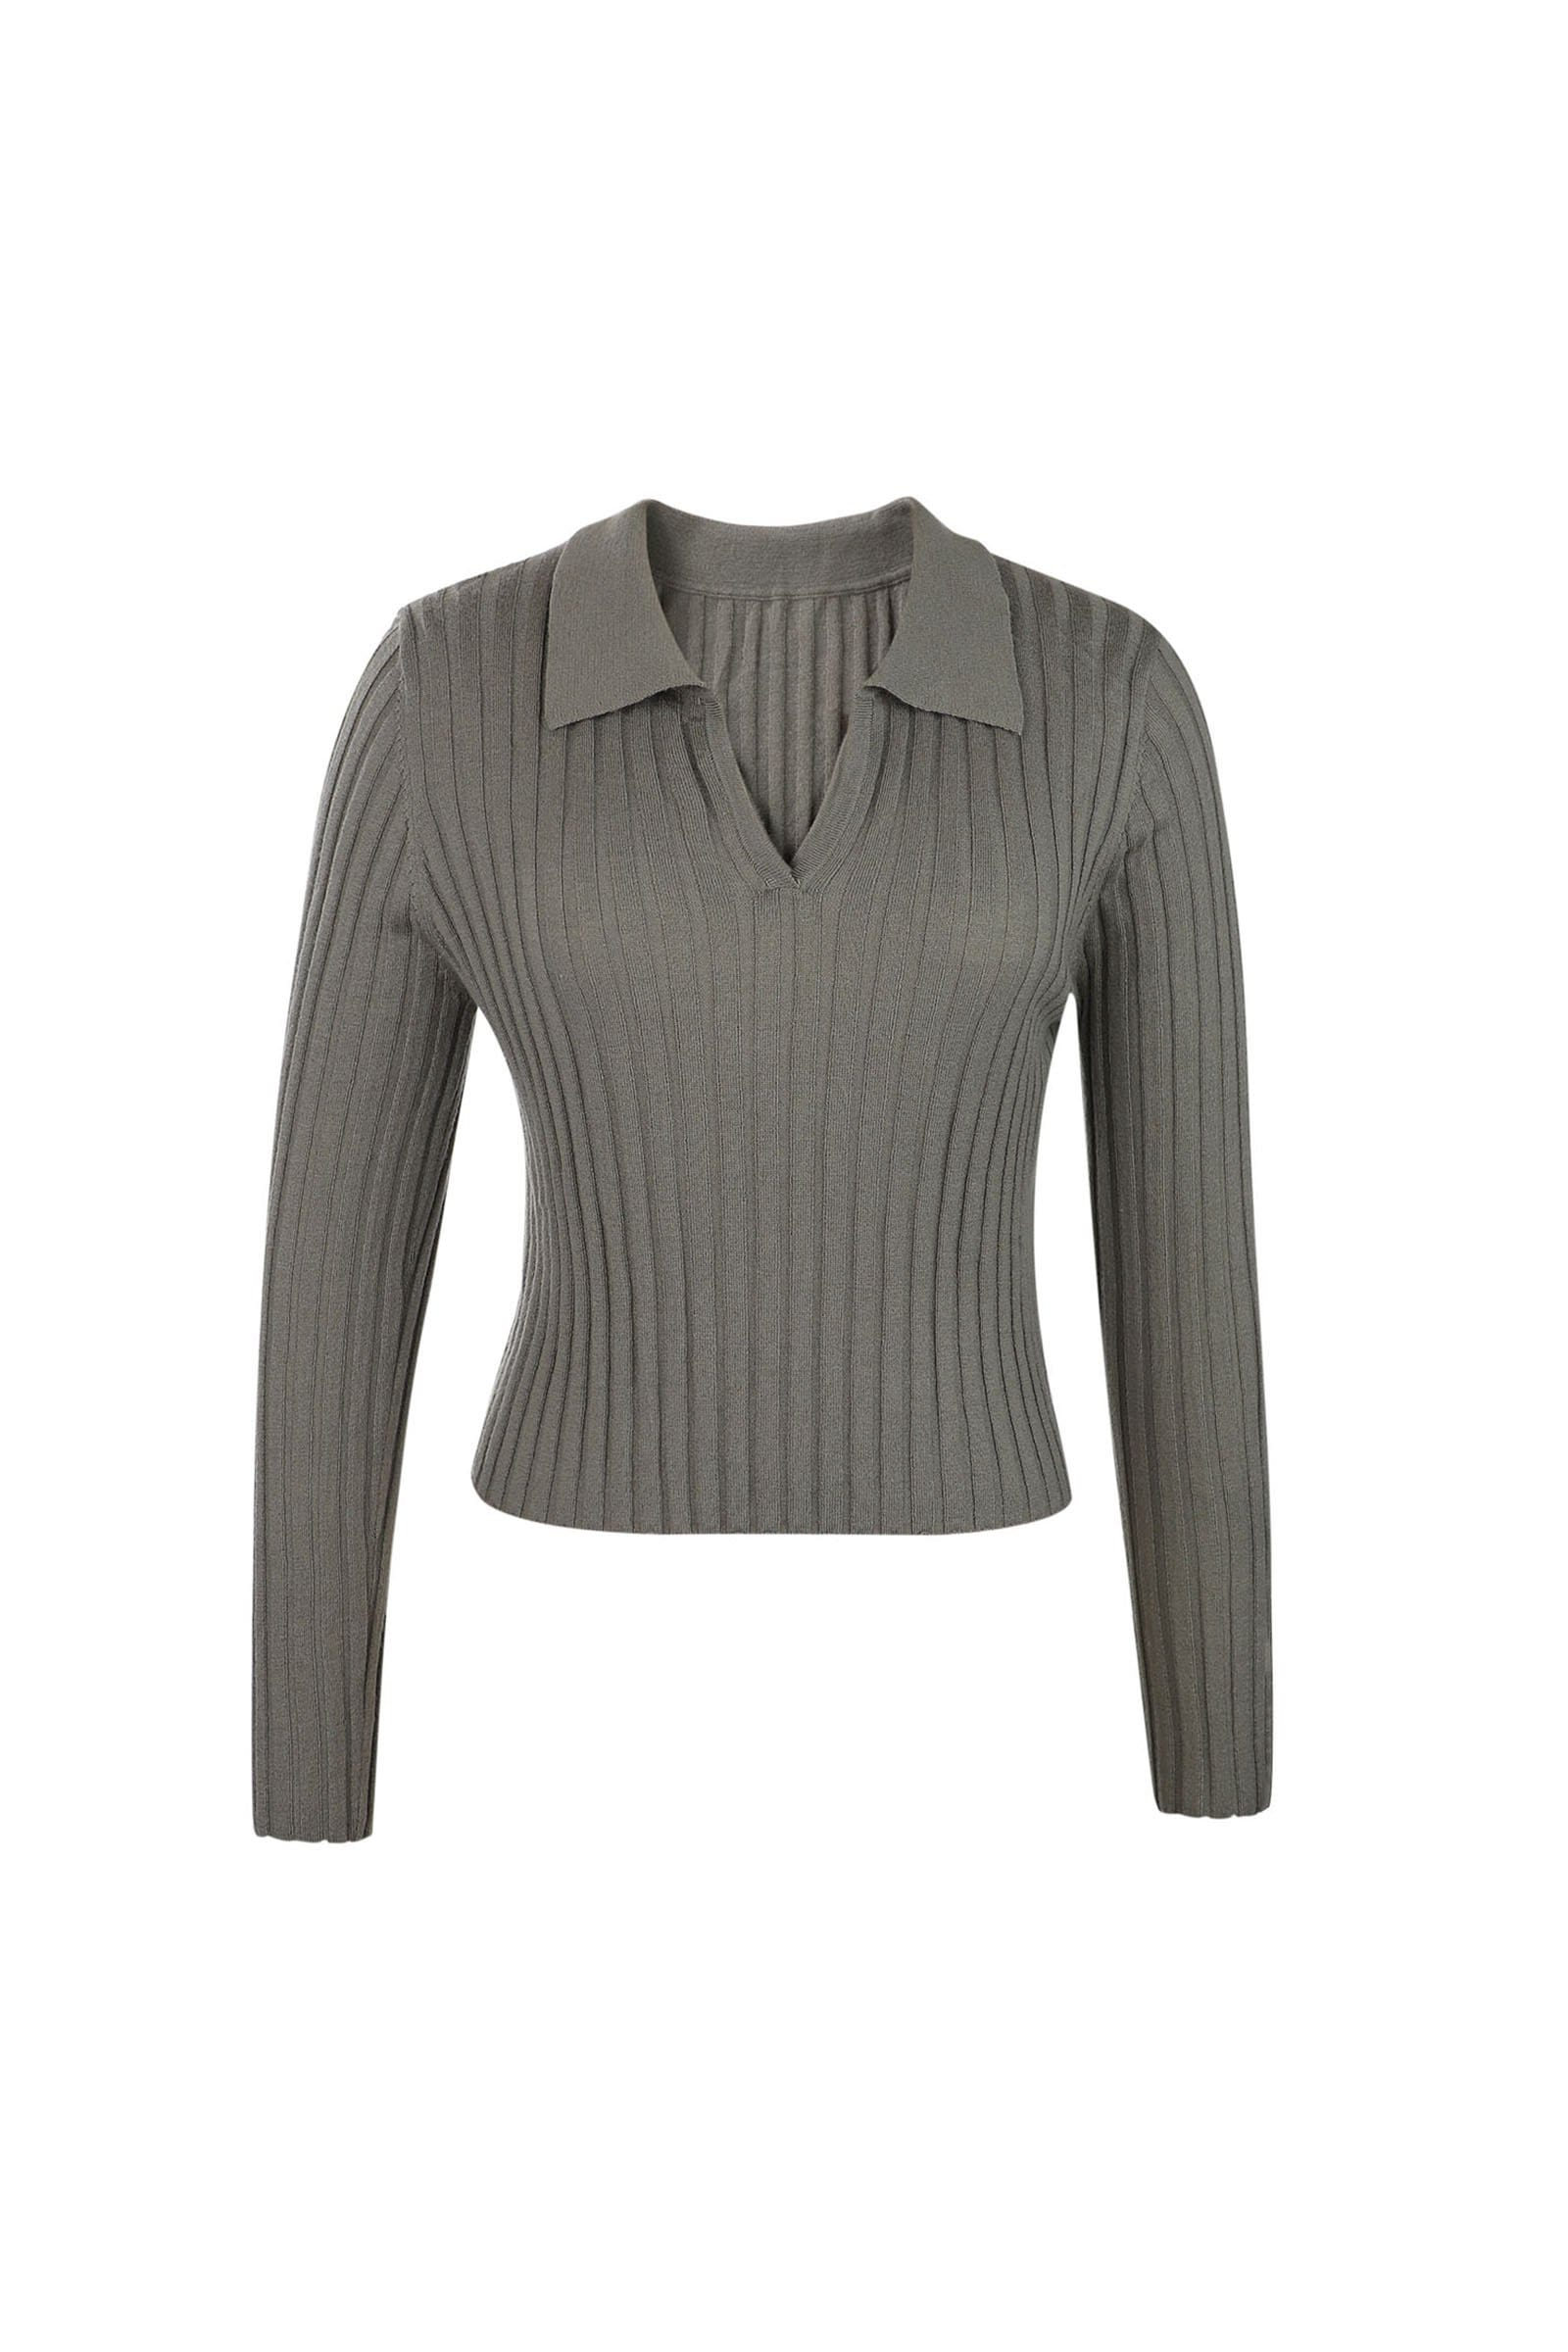 Coco Olive Green Ribbed Sweater